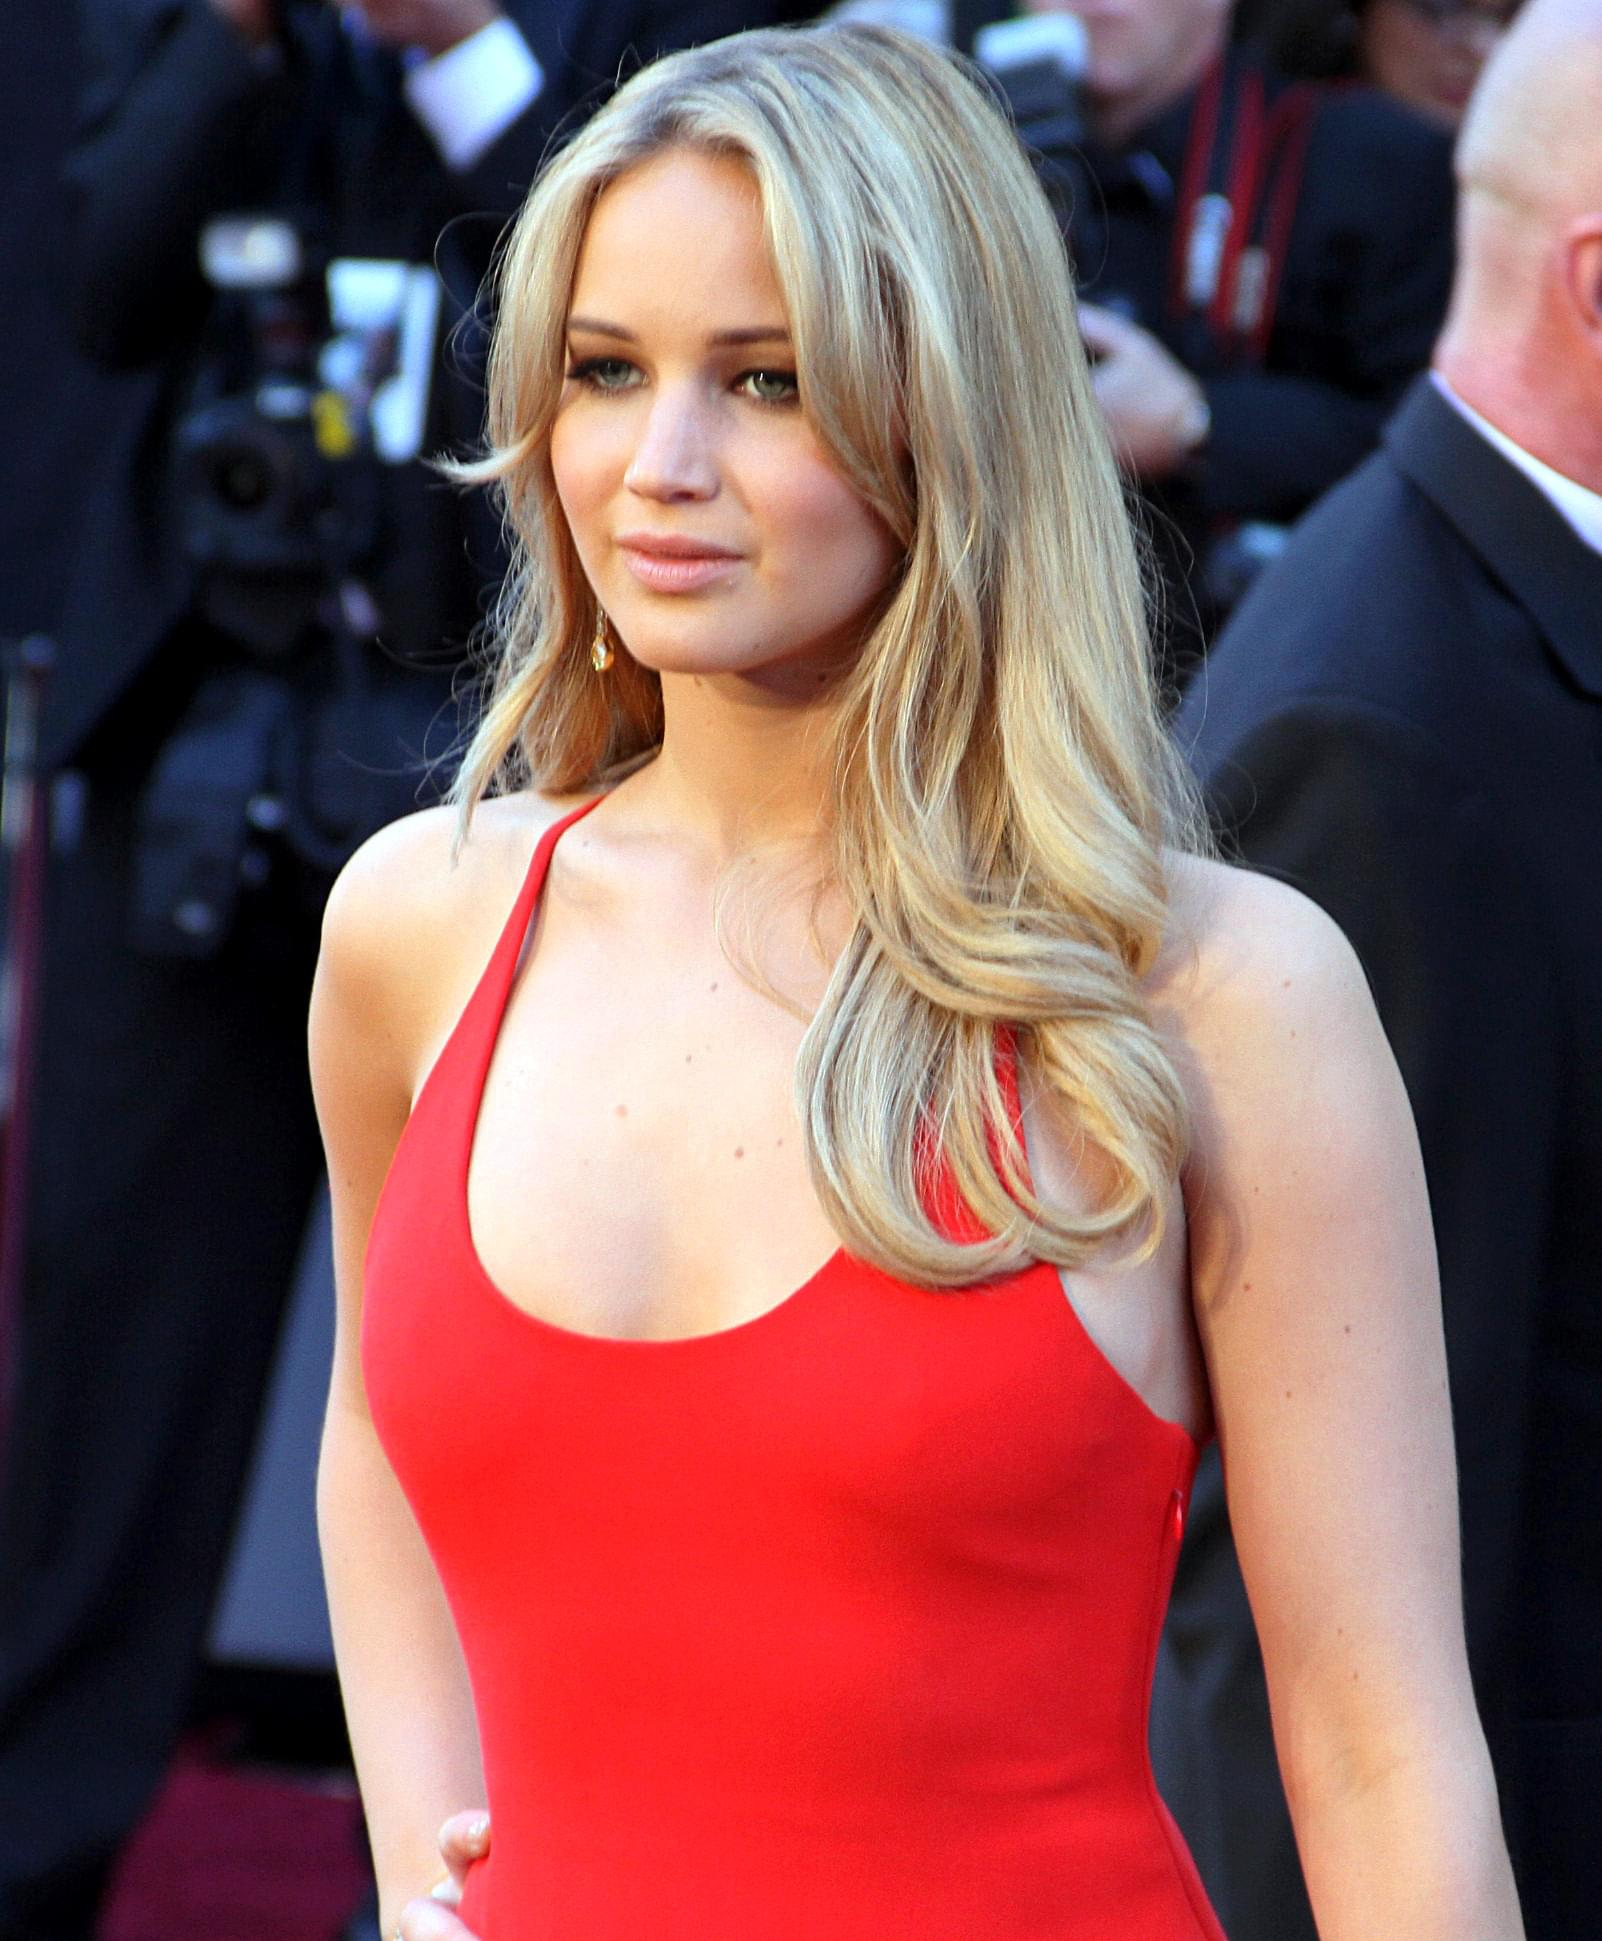 Jennifer Lawrence Set to Wed in RI This Weekend-VENUE UPDATE